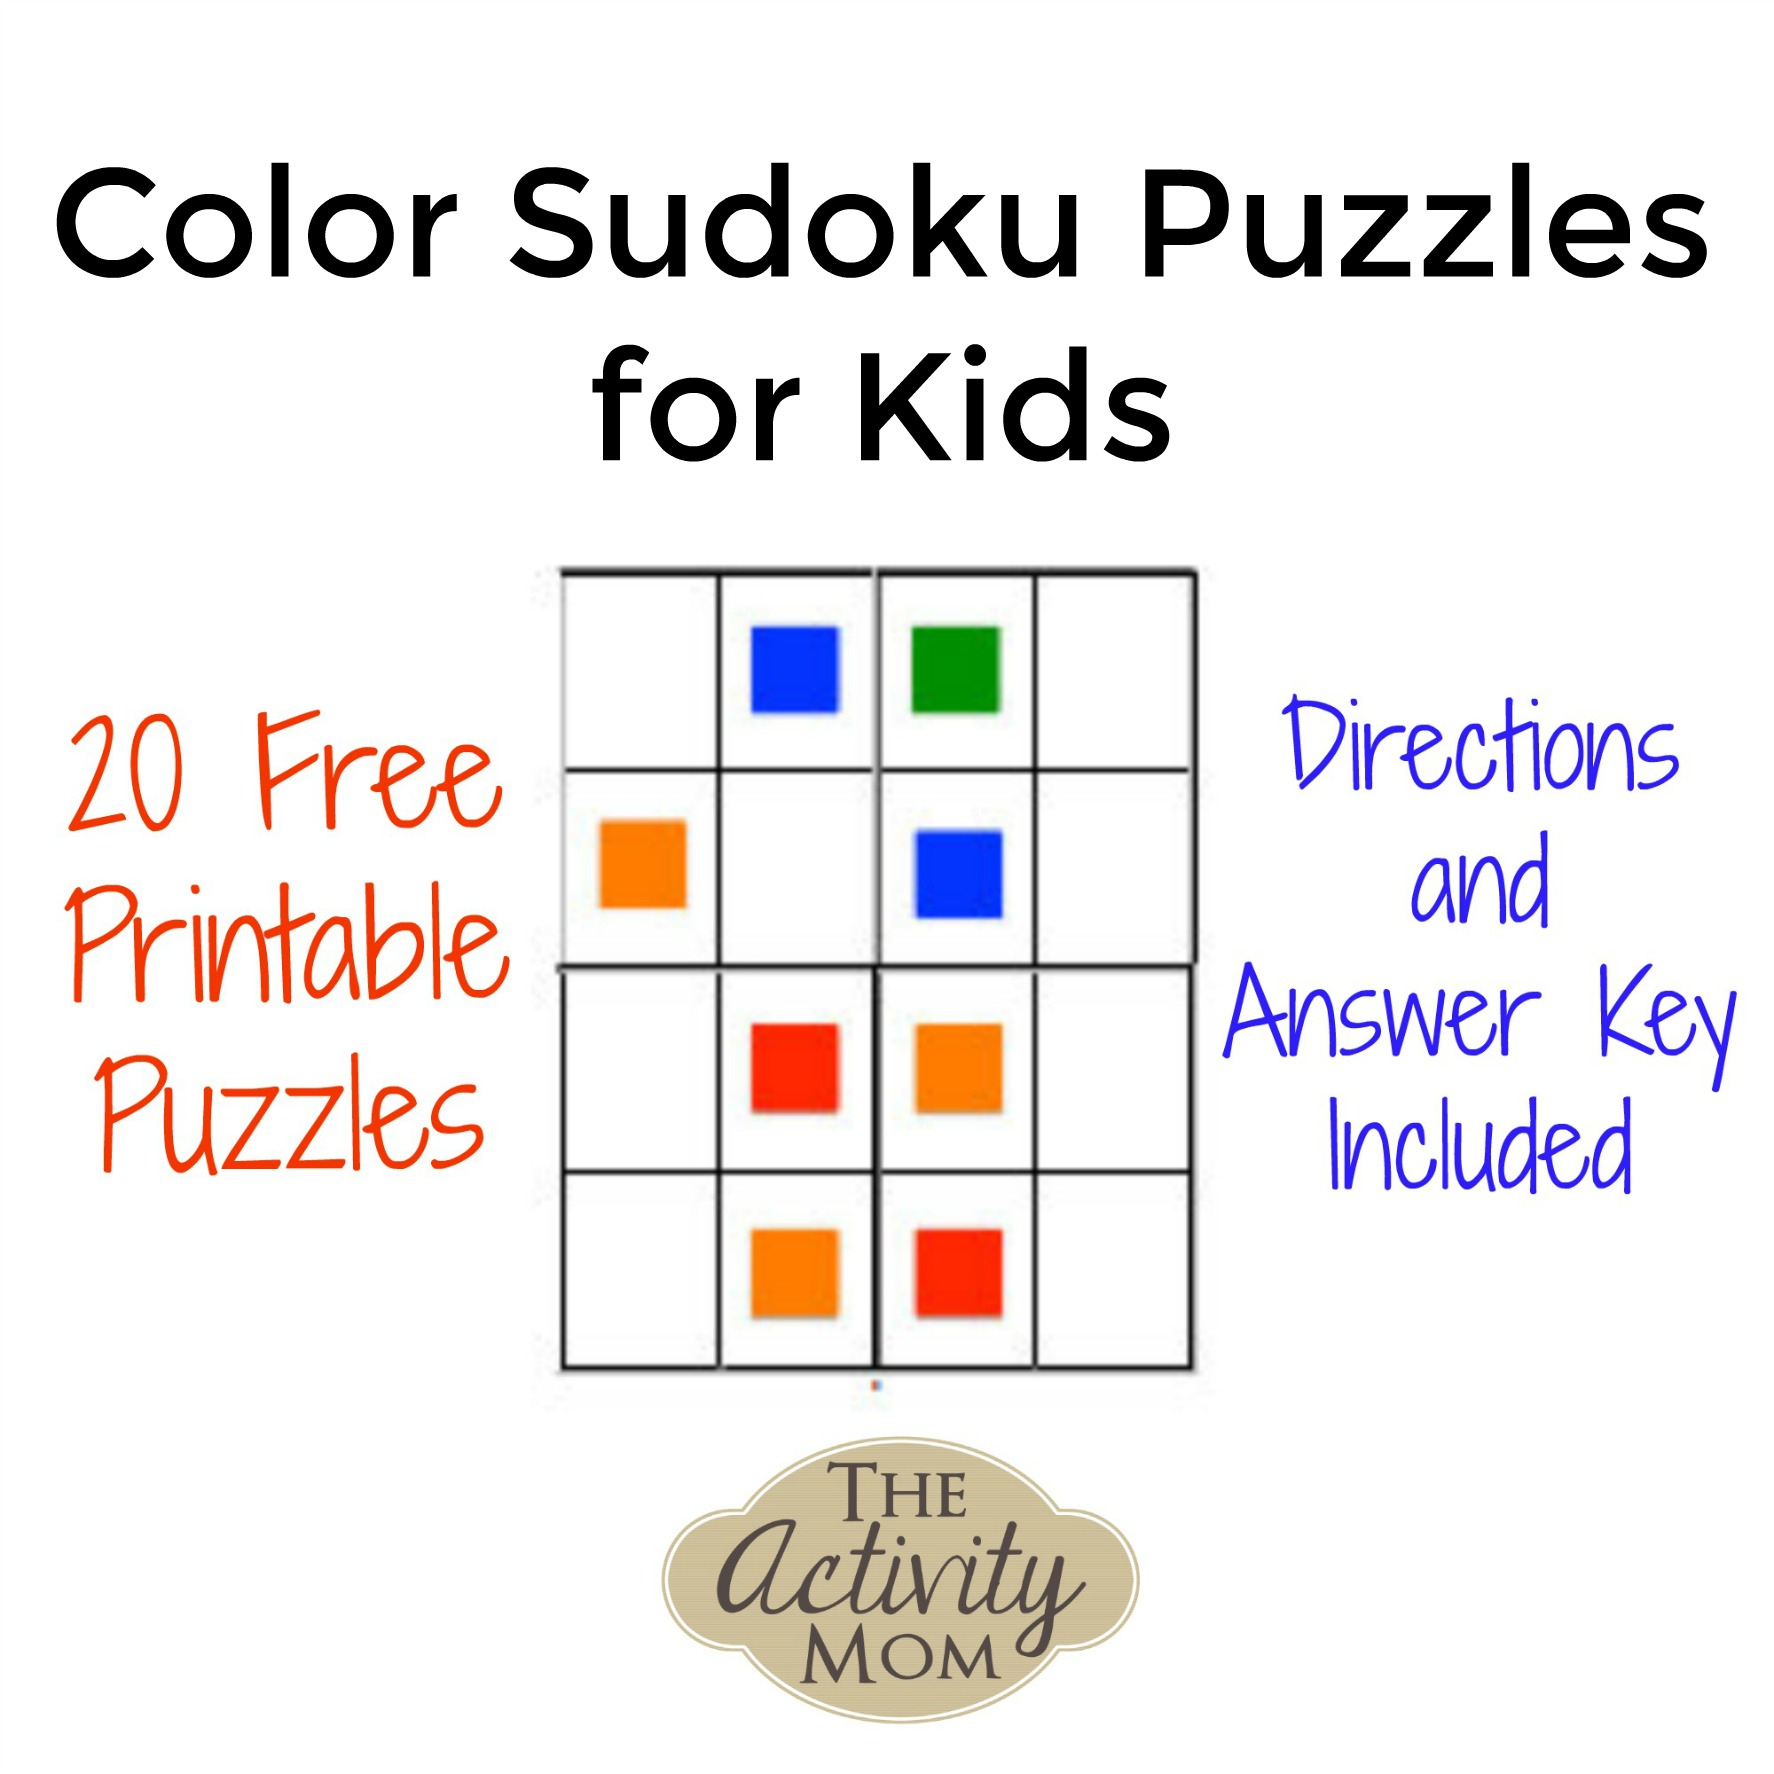 The Activity Mom - Free Printable Color Sudoku Puzzles For